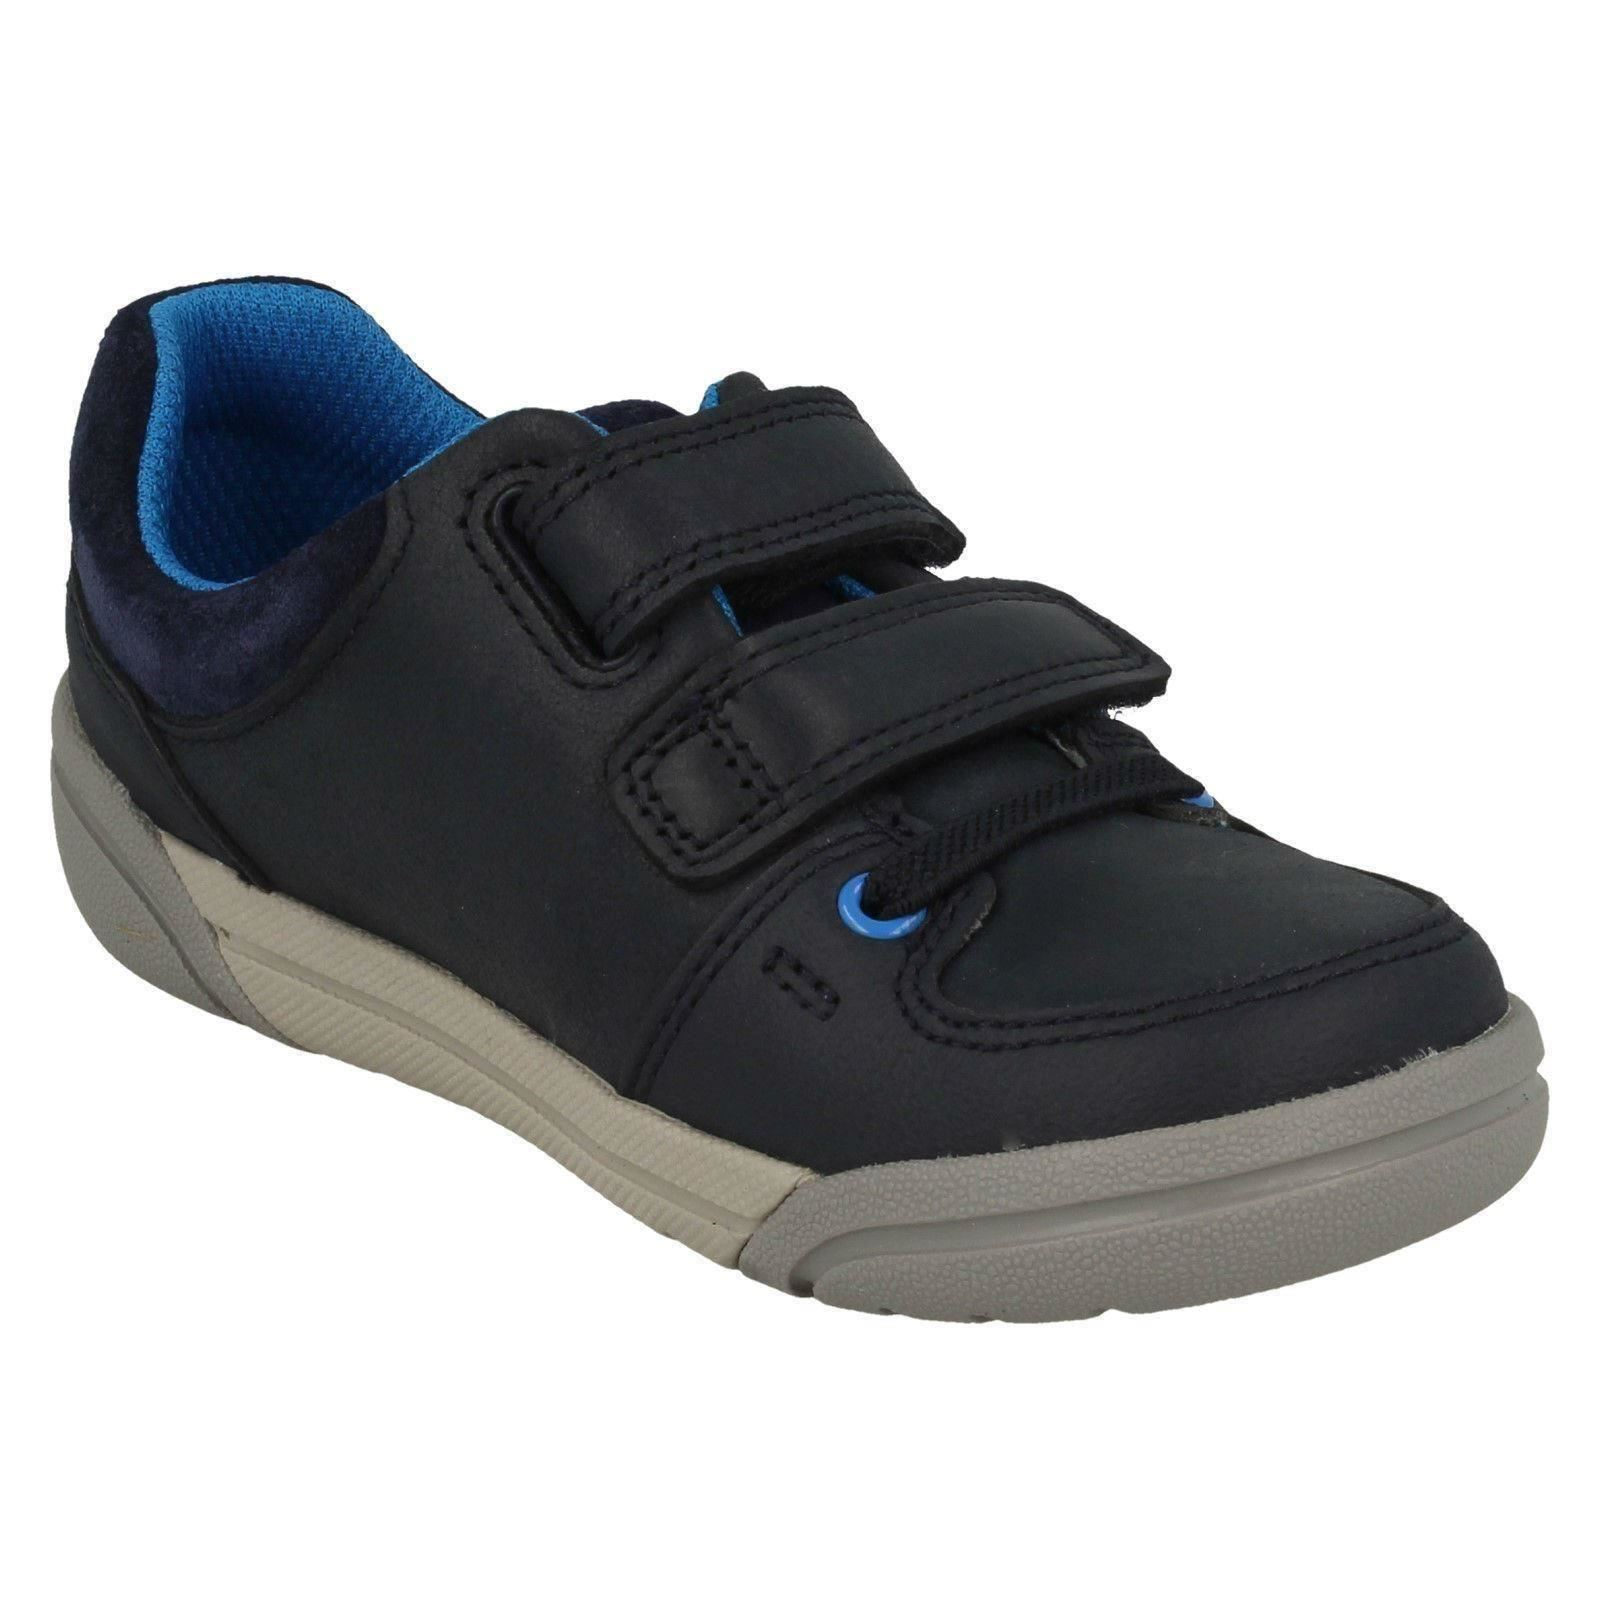 Clarks Boys Casual Shoes Tolby Buzz